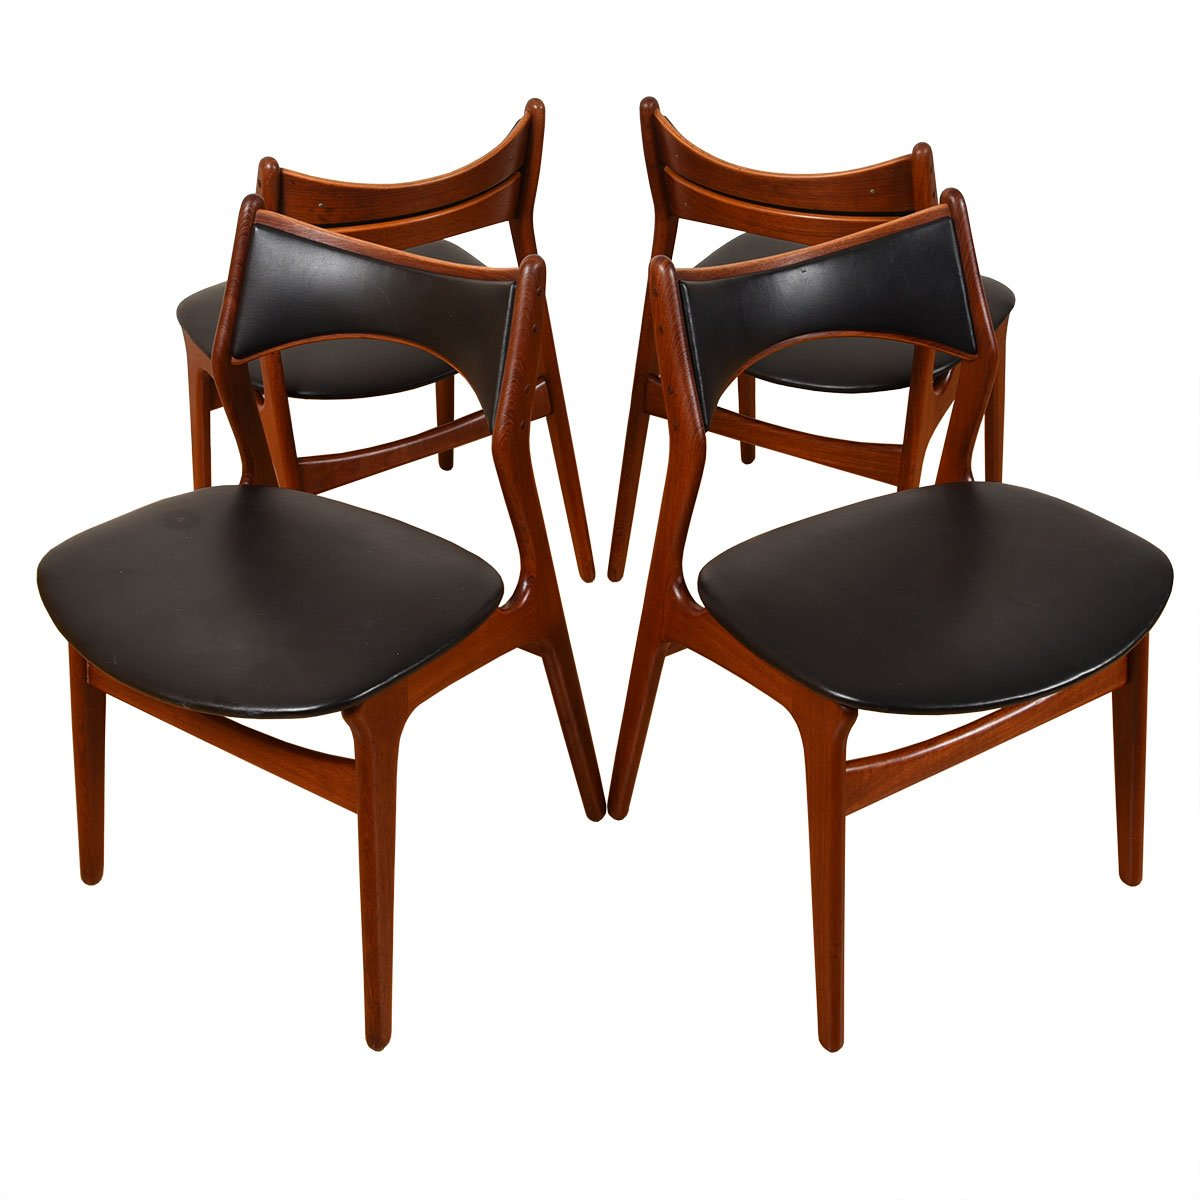 Seldom-Seen Set of 4 Early Danish Teak Erik Buch Dining Chairs